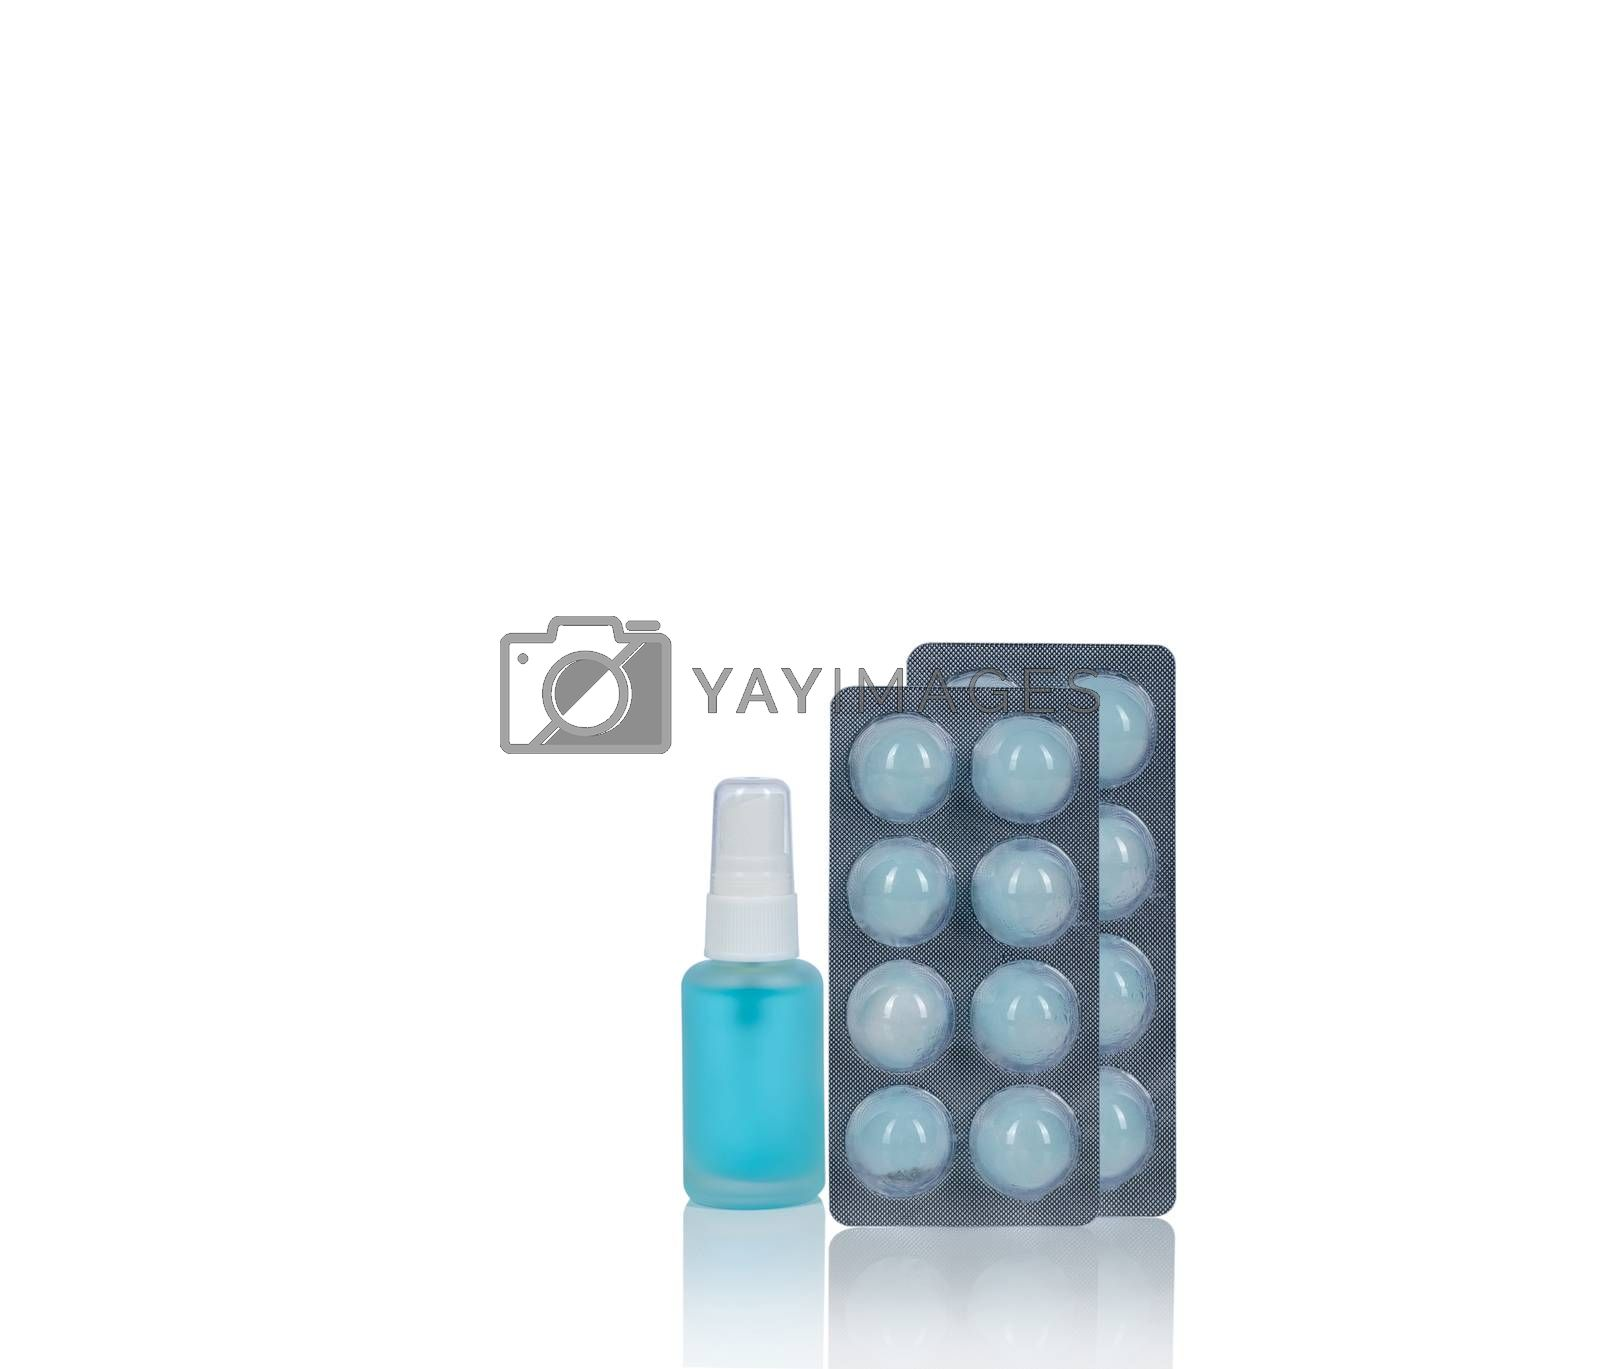 Alcohol spray in glass bottle container isolated on white background. Cotton ball with alcohol in blister pack for cleaning hand to protect coronavirus, germs. Medical supply for personal hygiene.